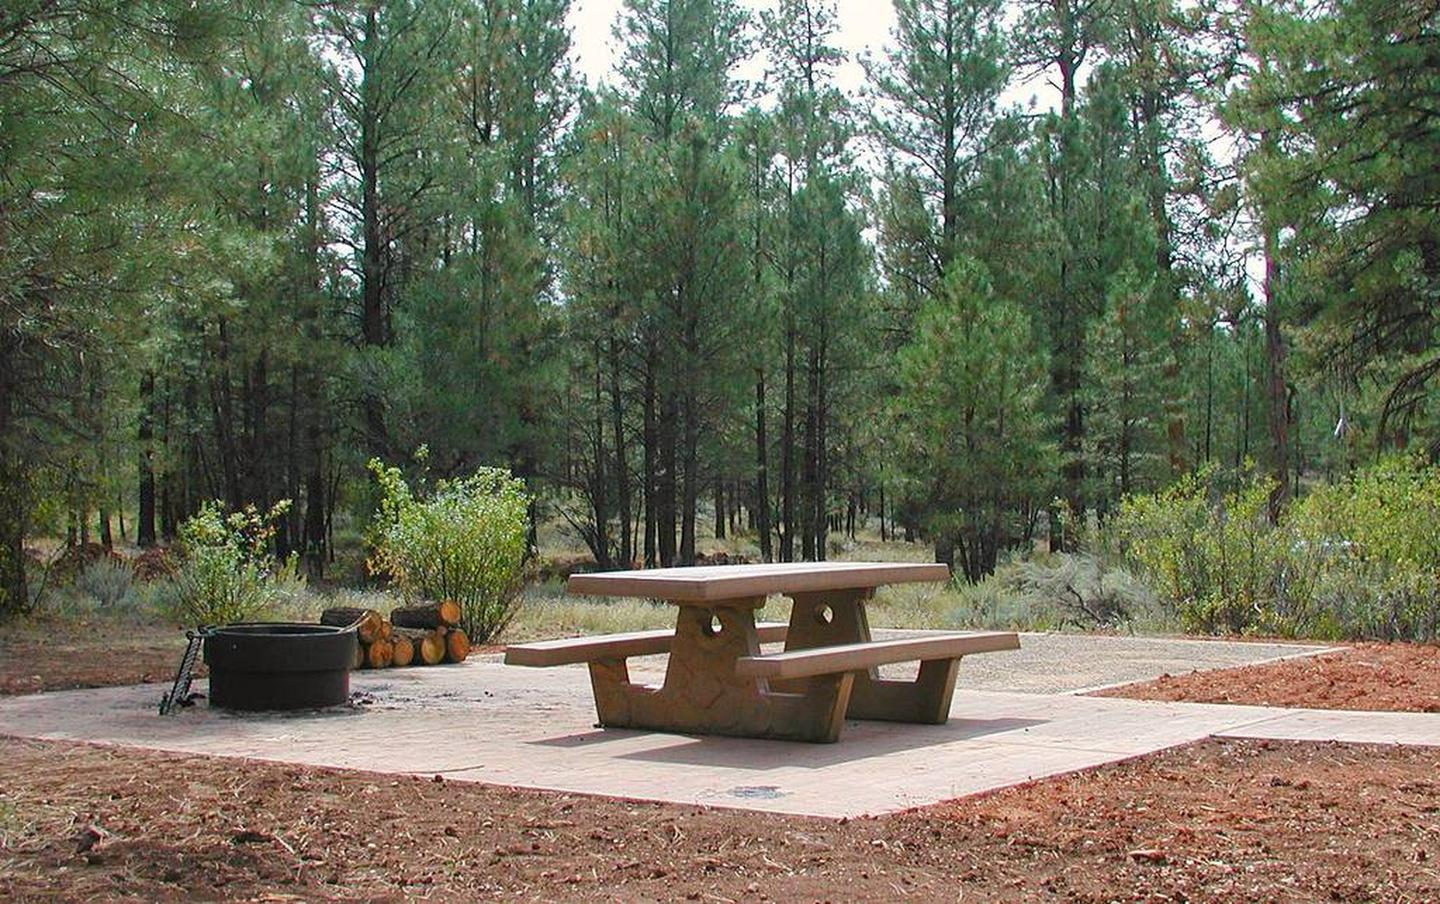 Camp siteCamp sites are spacious and provide a picnic table, fire ring and hardened surface for tents and gear.